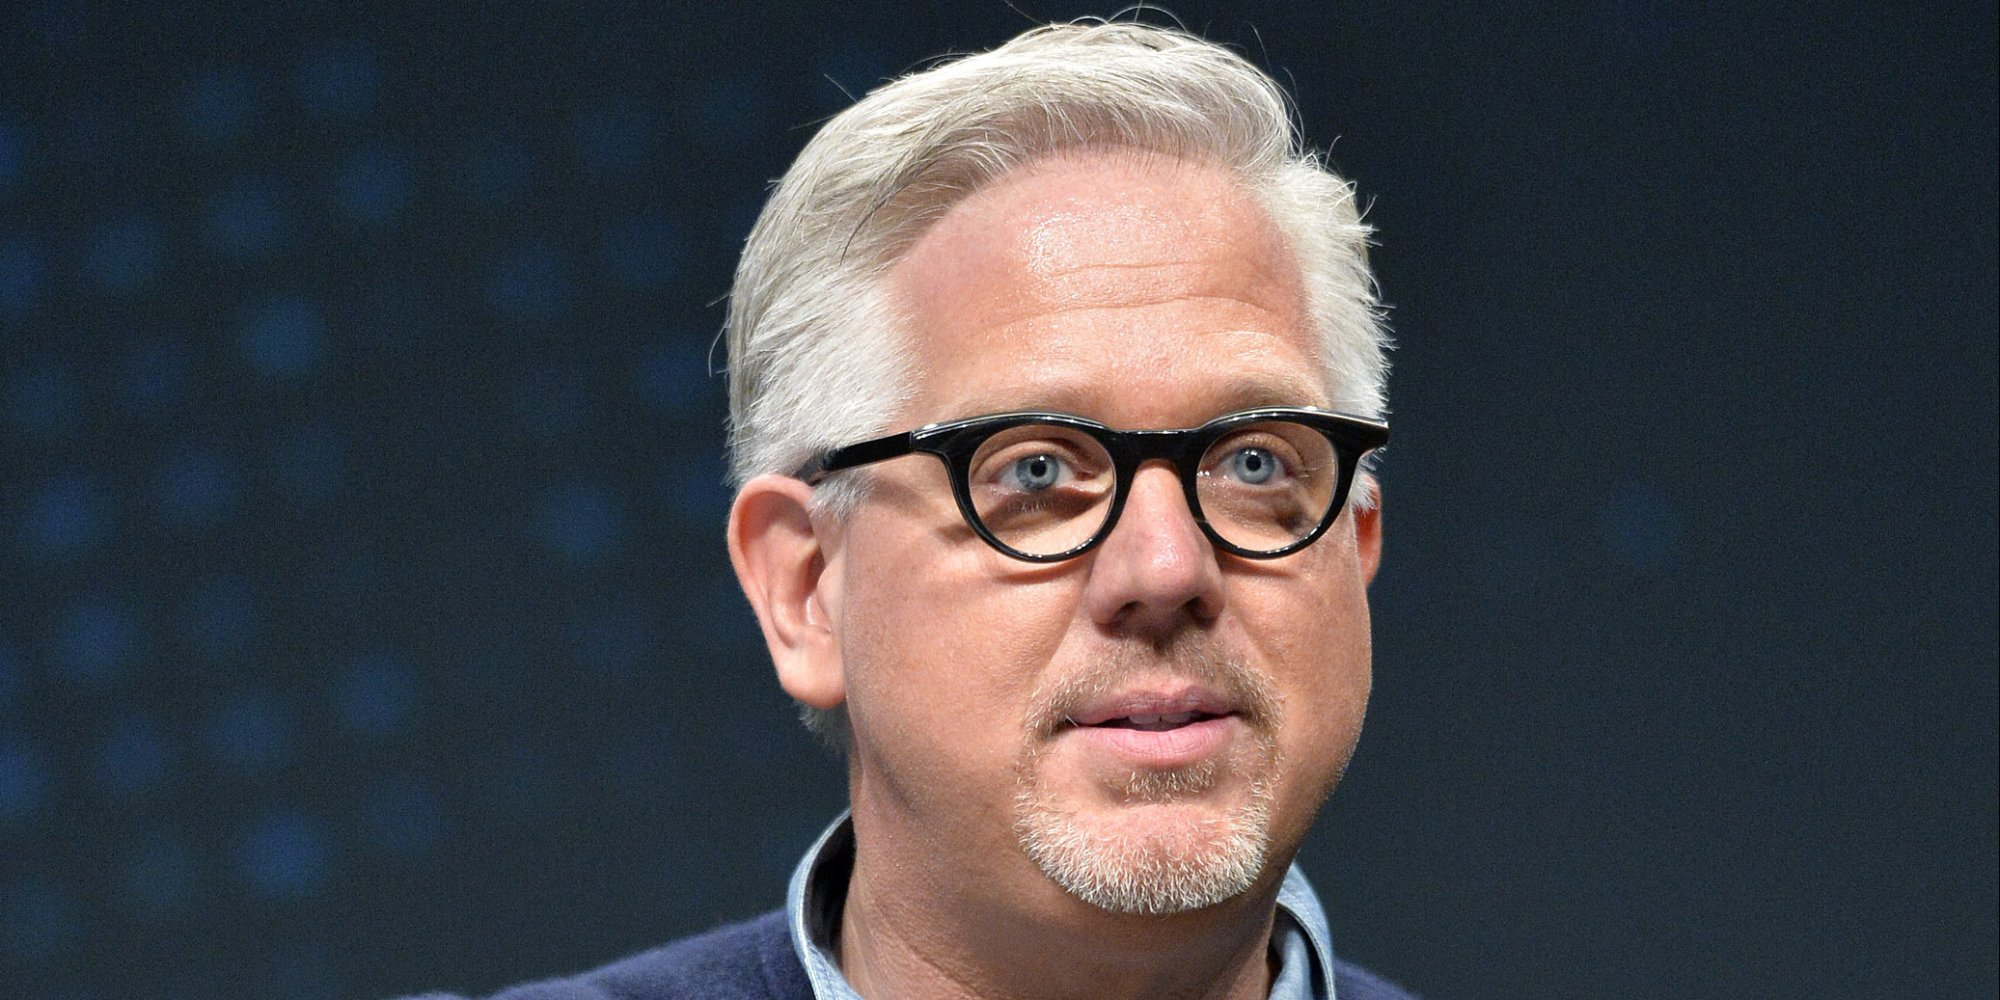 Glenn Beck Declares He Is No Longer A Republican: 'I'm Done With Them'